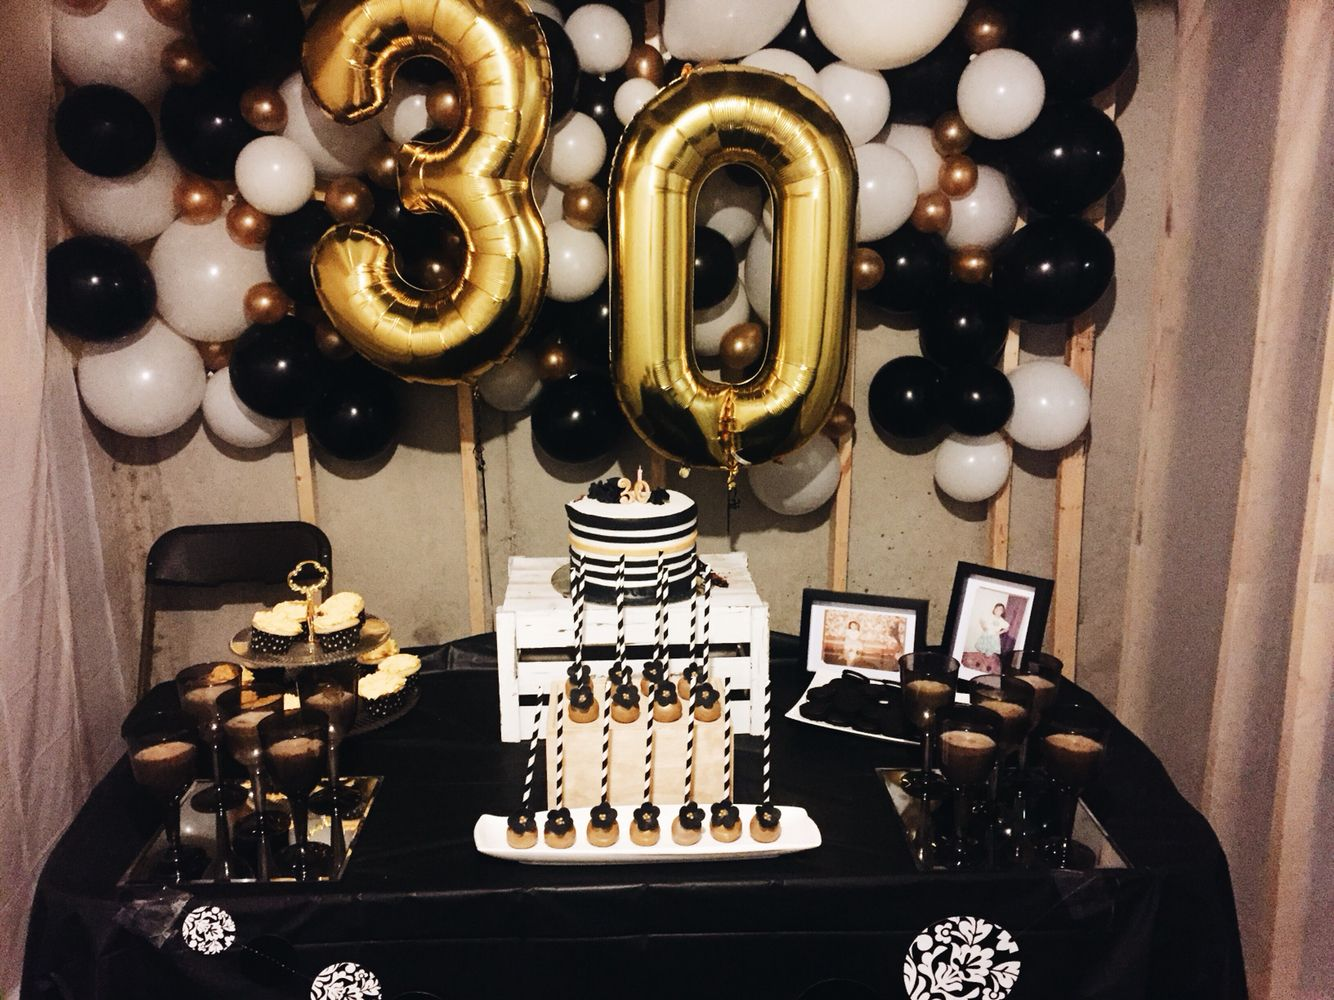 Surprise 30th bday party w/ gold, white, and black decor ...